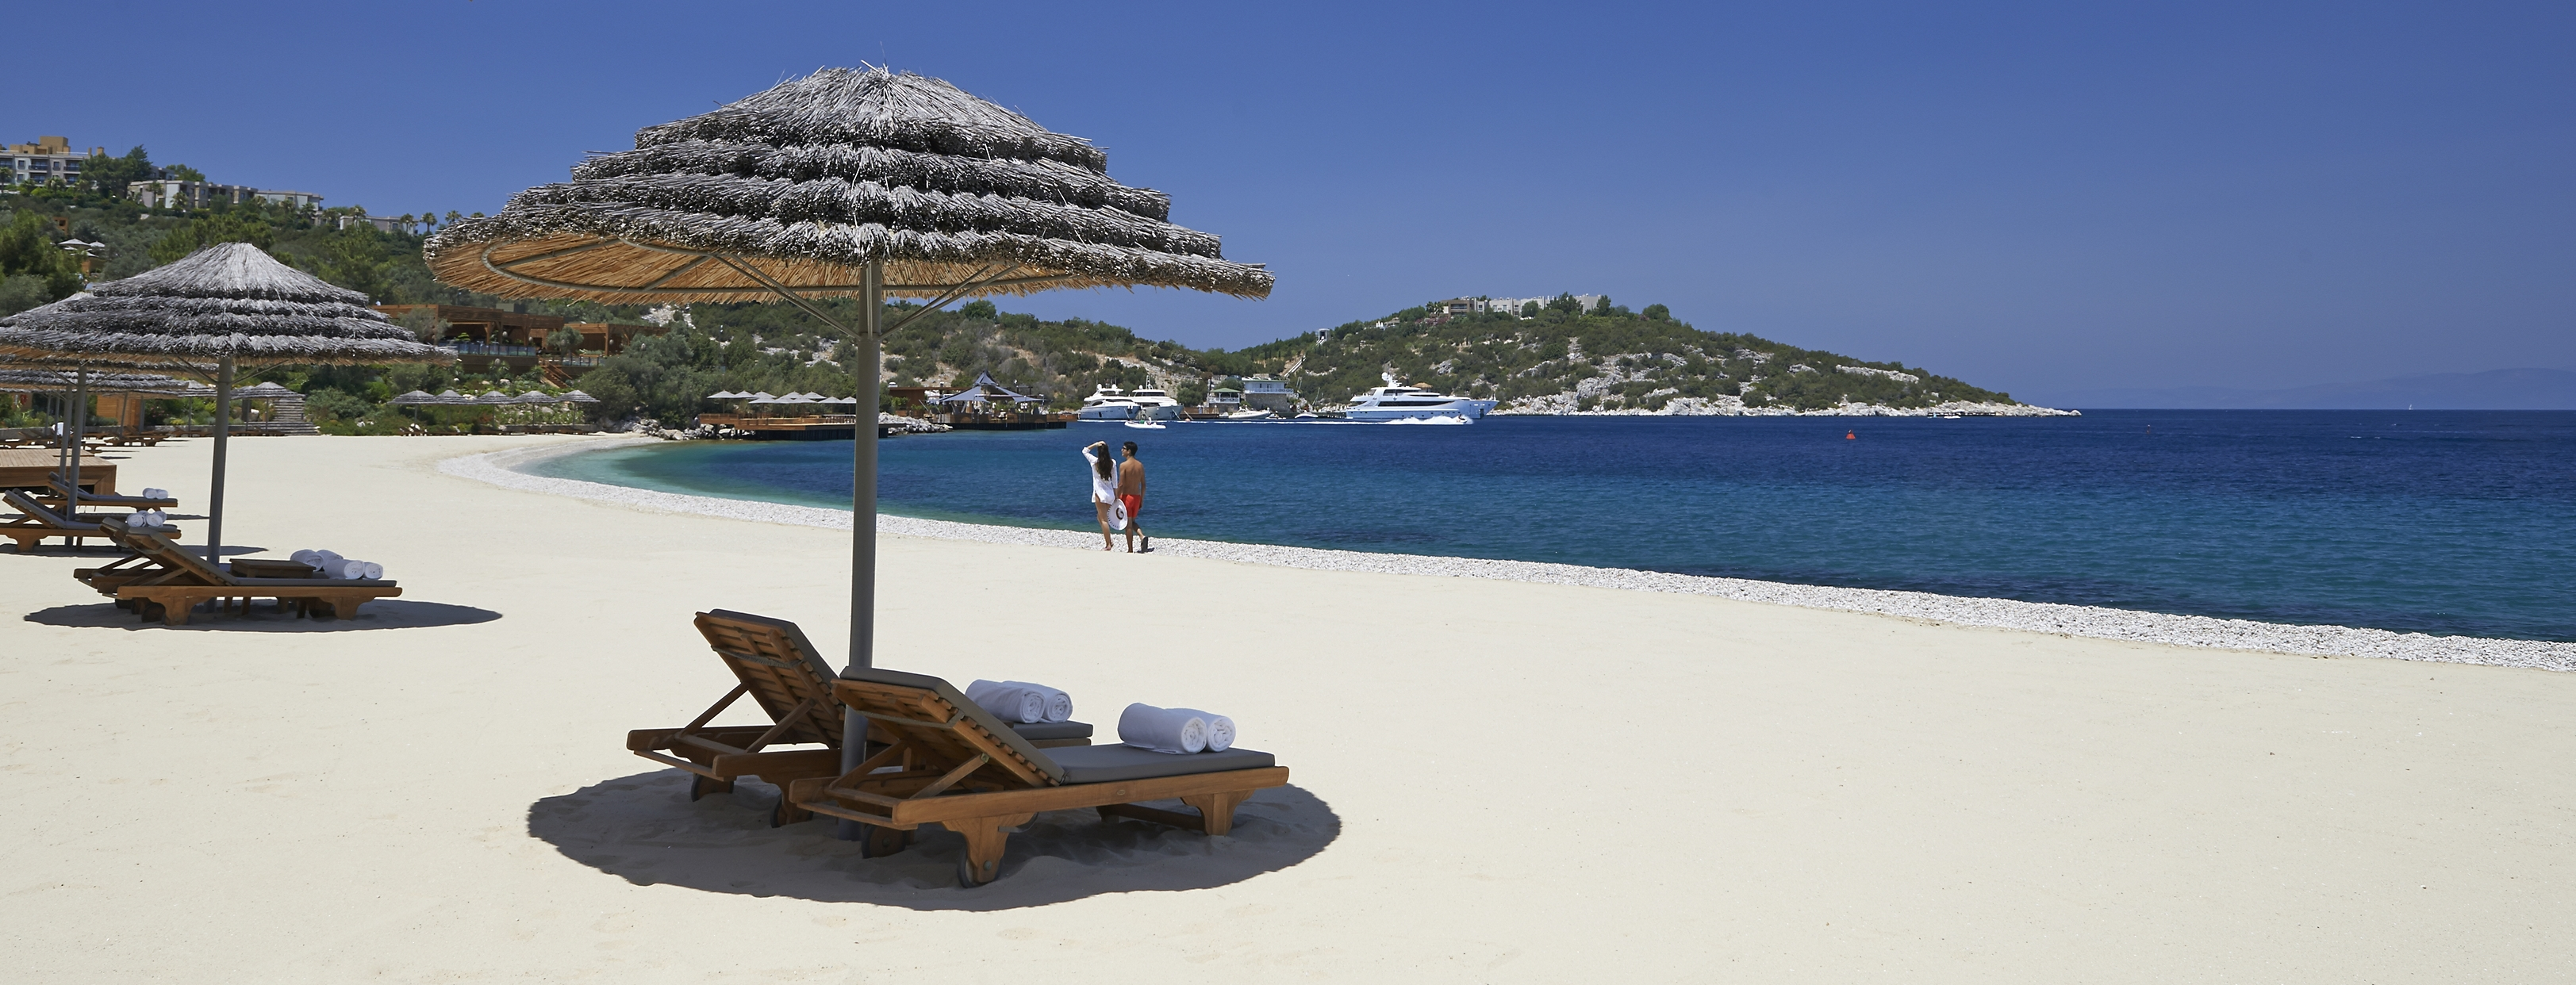 bodrum-relax-on-the-beach